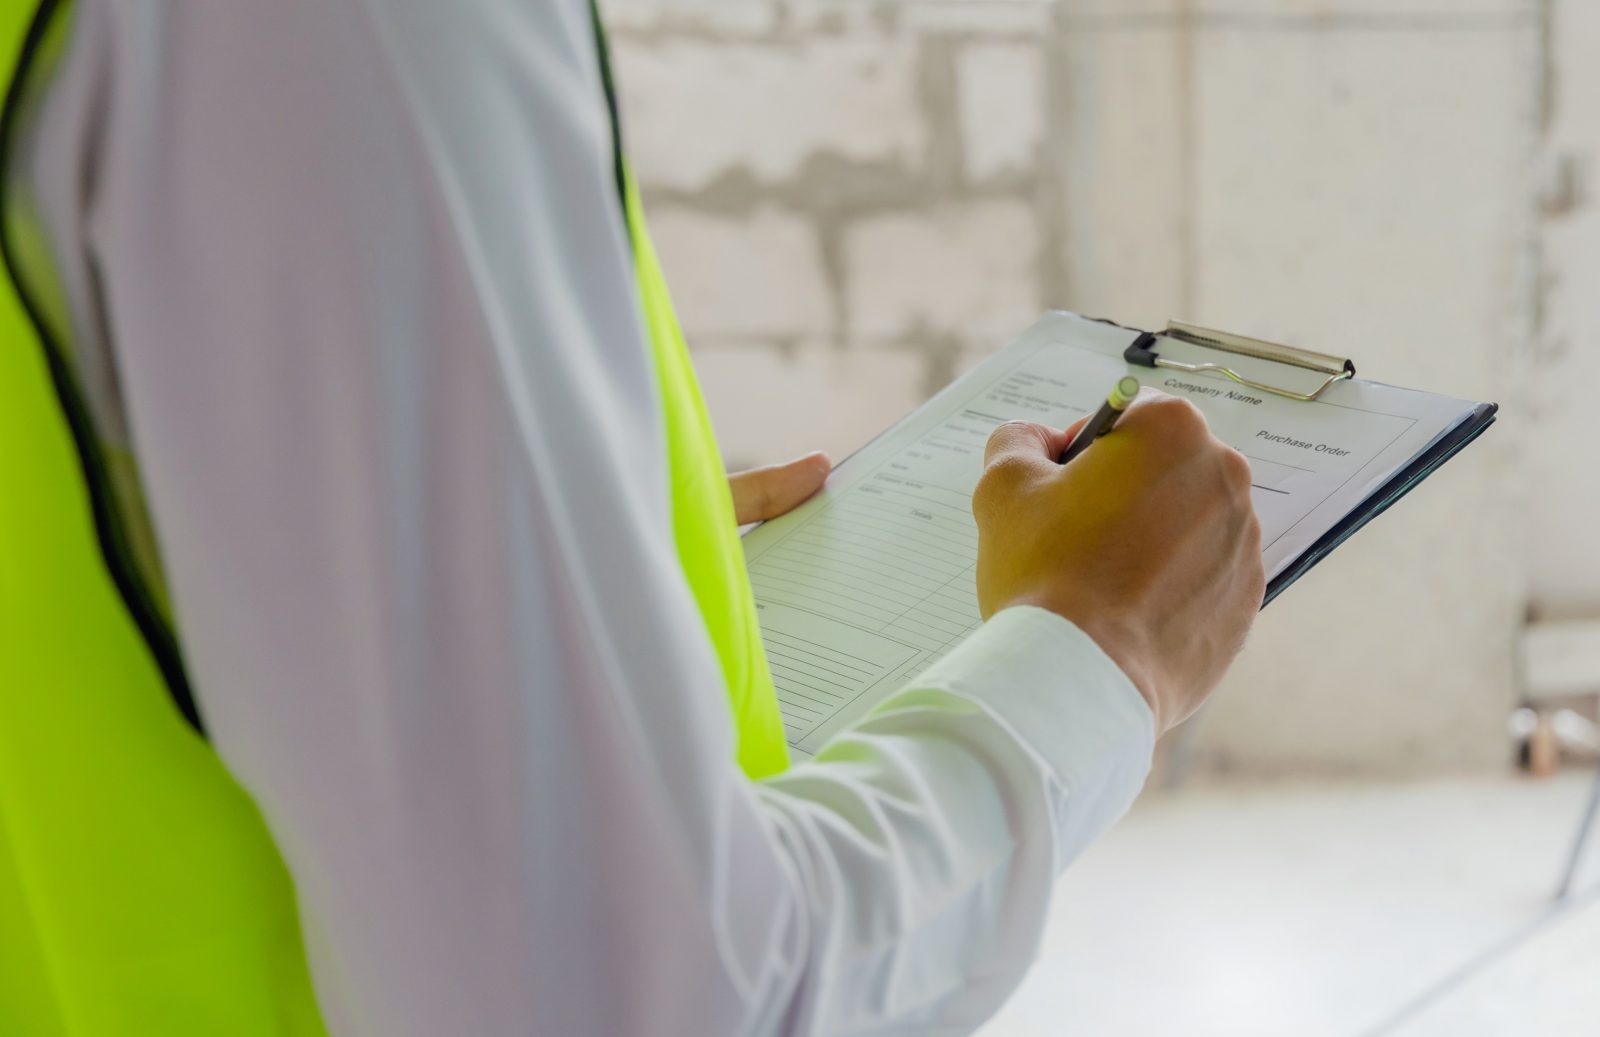 Betta Fire Protection, Sydney have been completing works for Fire Orders that are compliant and trustworthy for over 40 years.